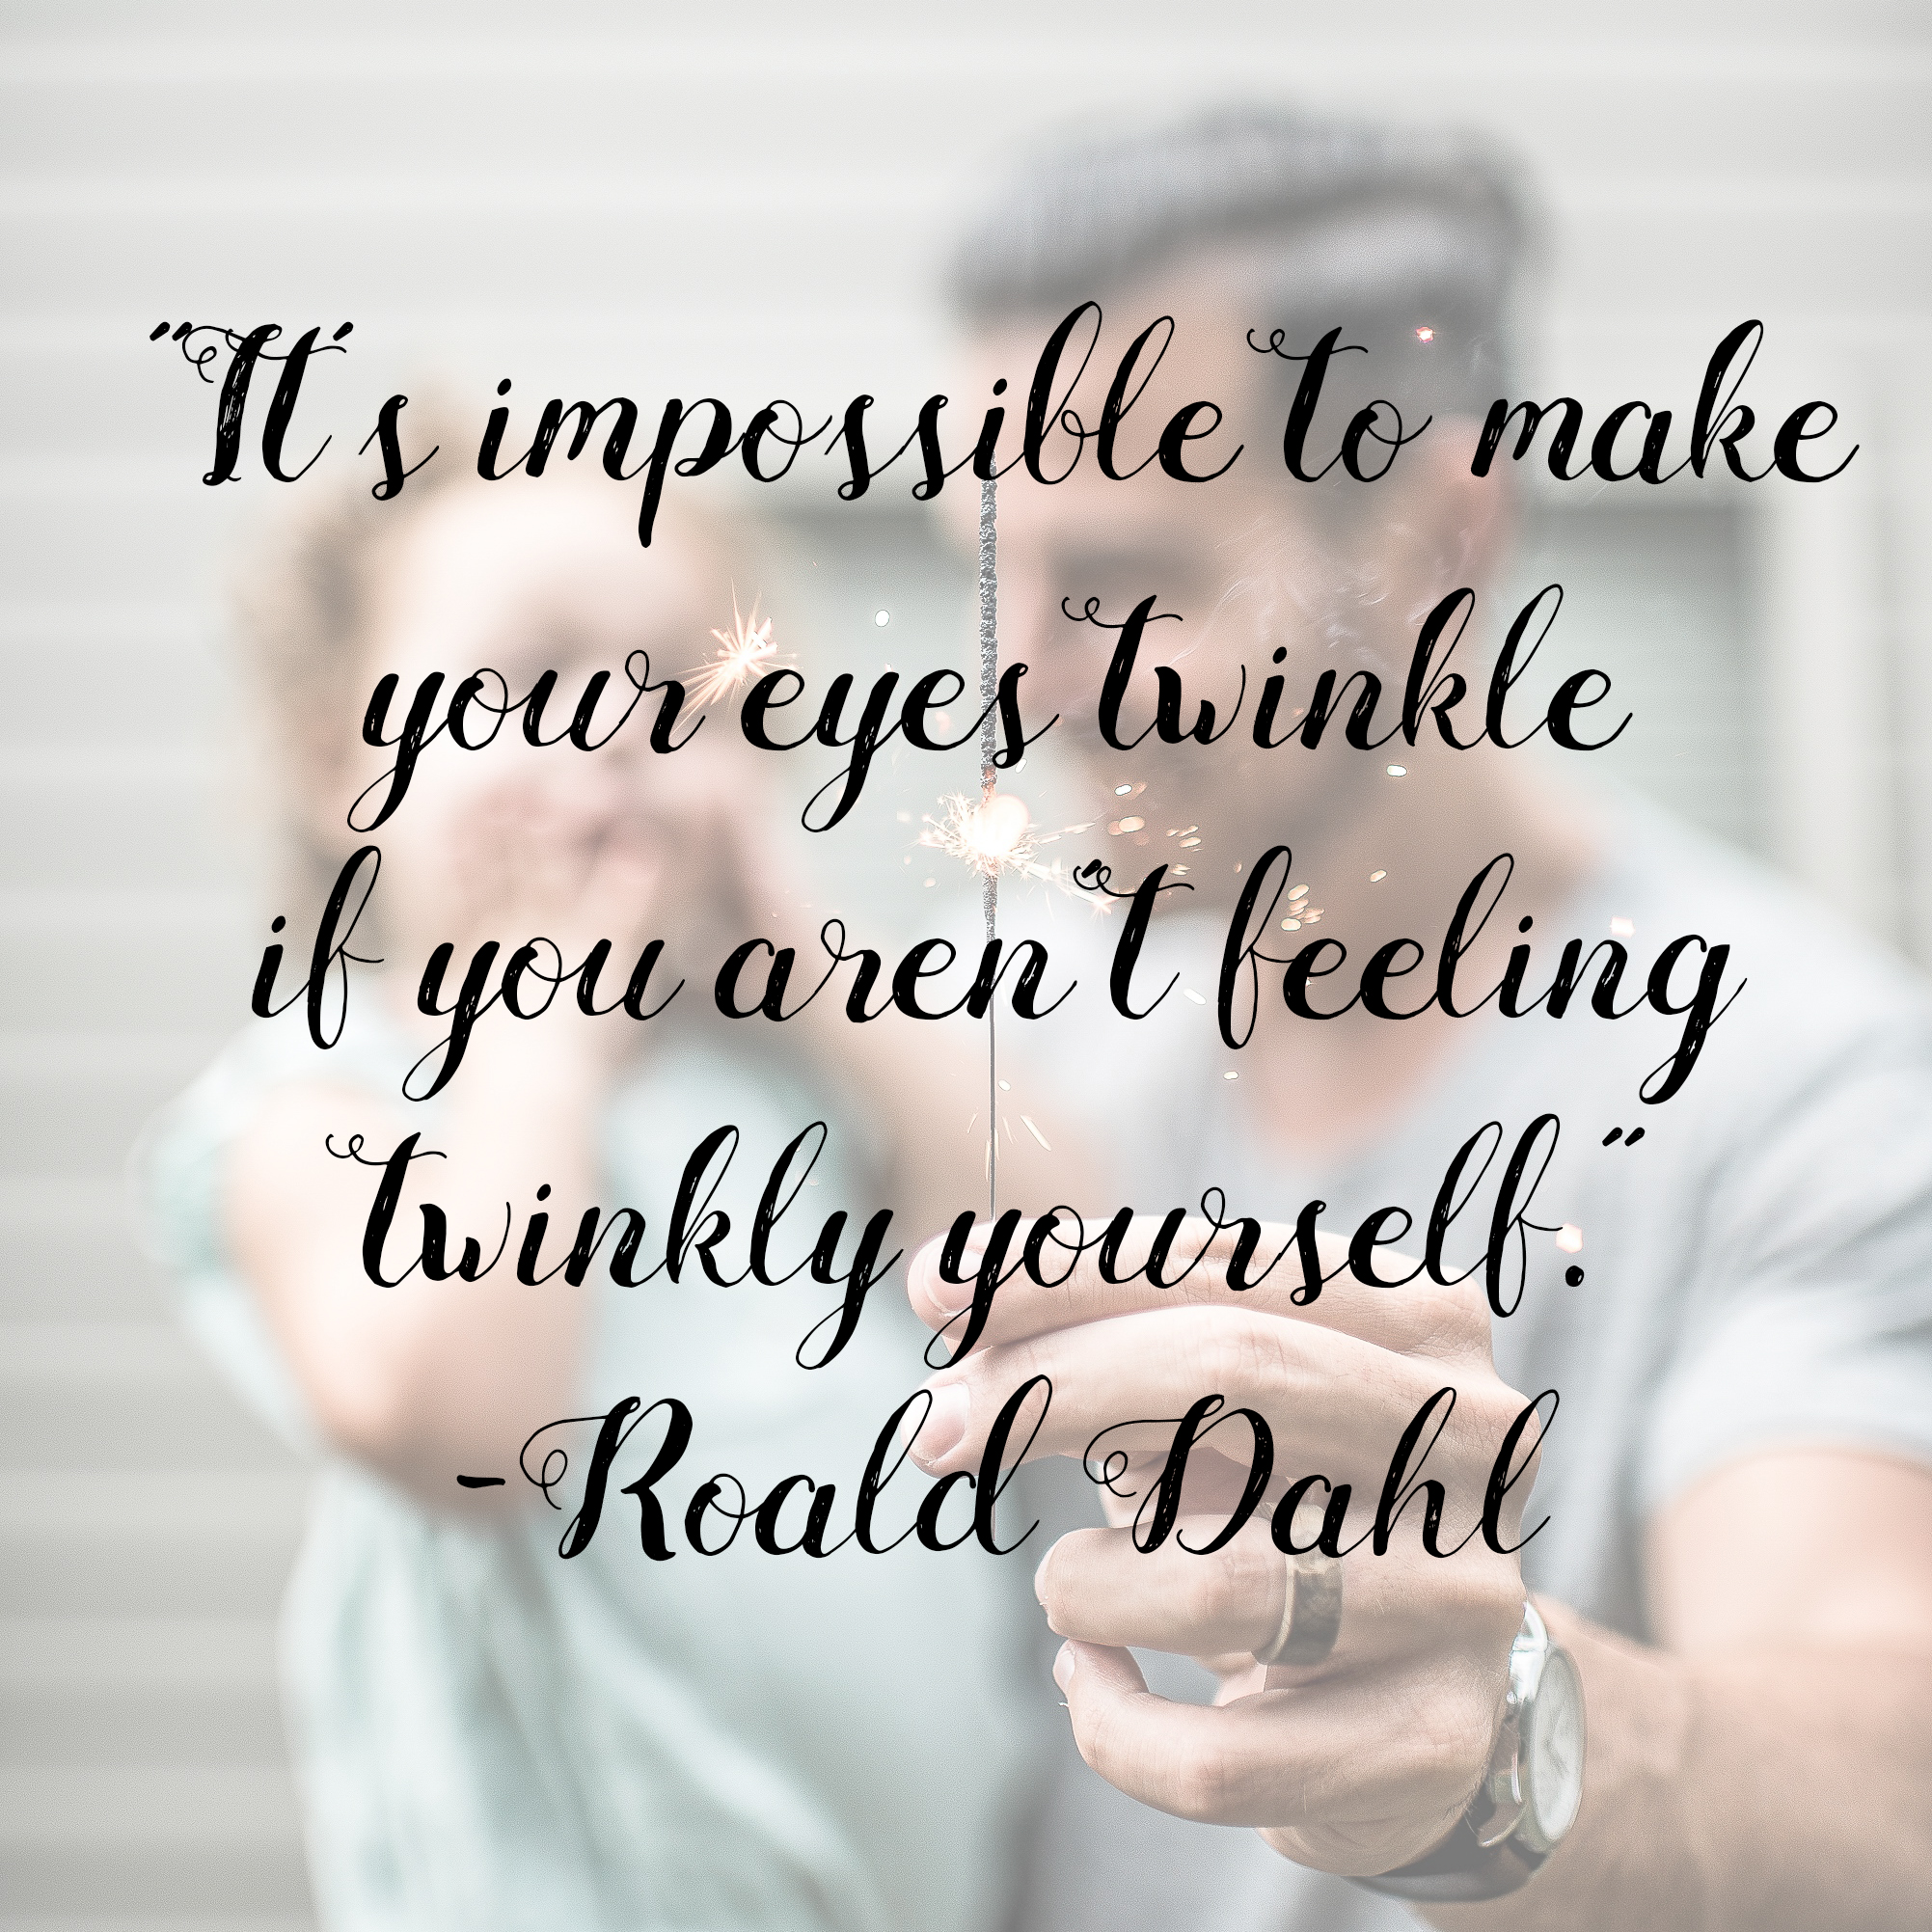 """It's impossible to make your eyes twinkle if you aren't feeling twinkly yourself."""" Roald Dahl"""